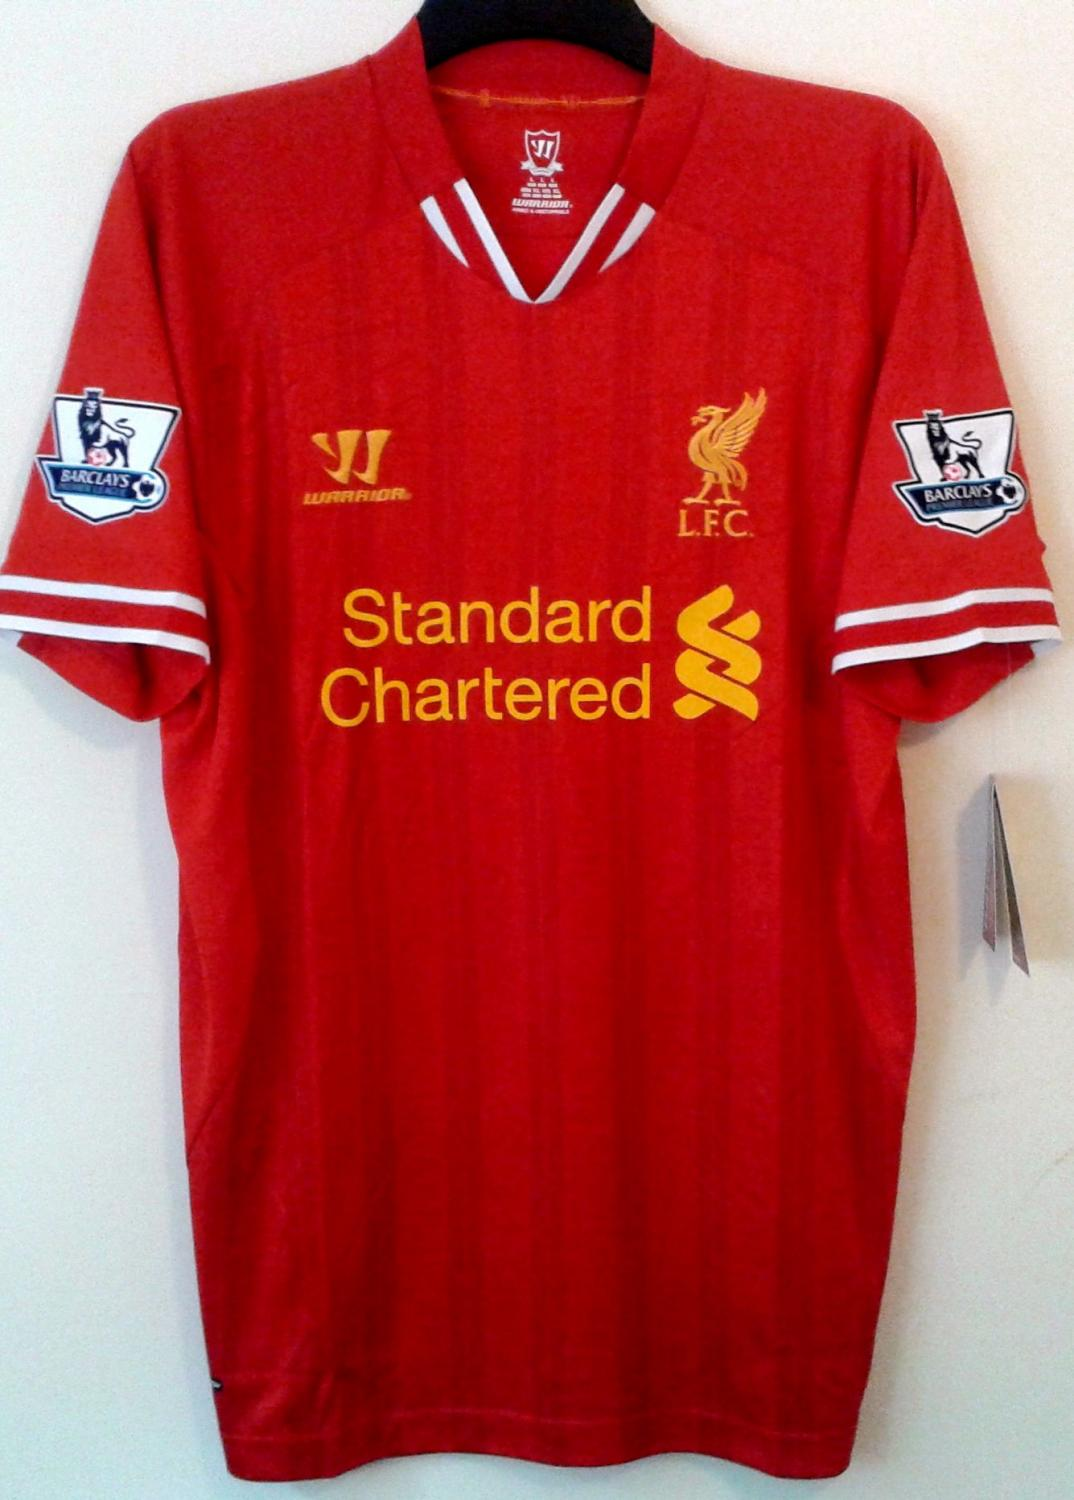 finest selection d3011 9d1cd Liverpool Home football shirt 2013 - 2014. Sponsored by ...